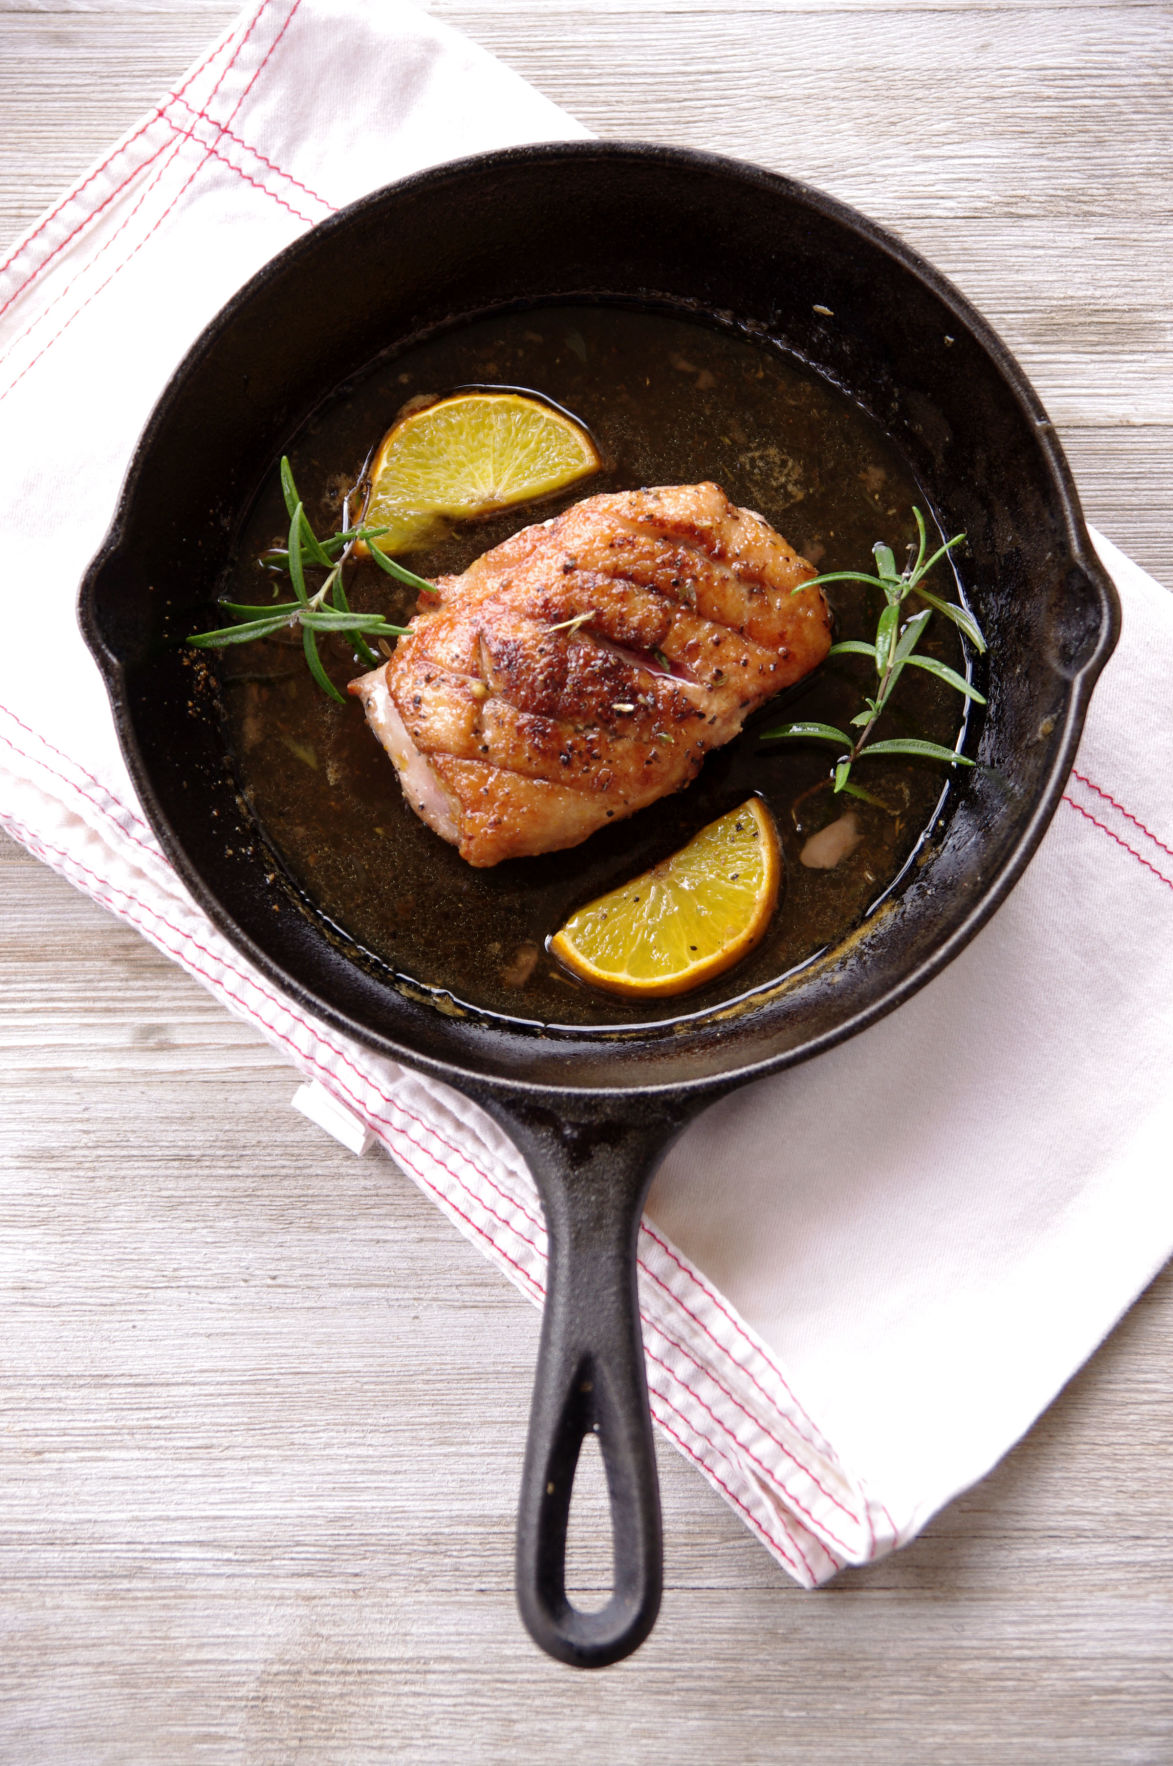 Recipes for Honey Orange Glazed Duck Breast, Honey Pecan Sweet Potatoes,  Pepper Jelly Brussels Sprouts